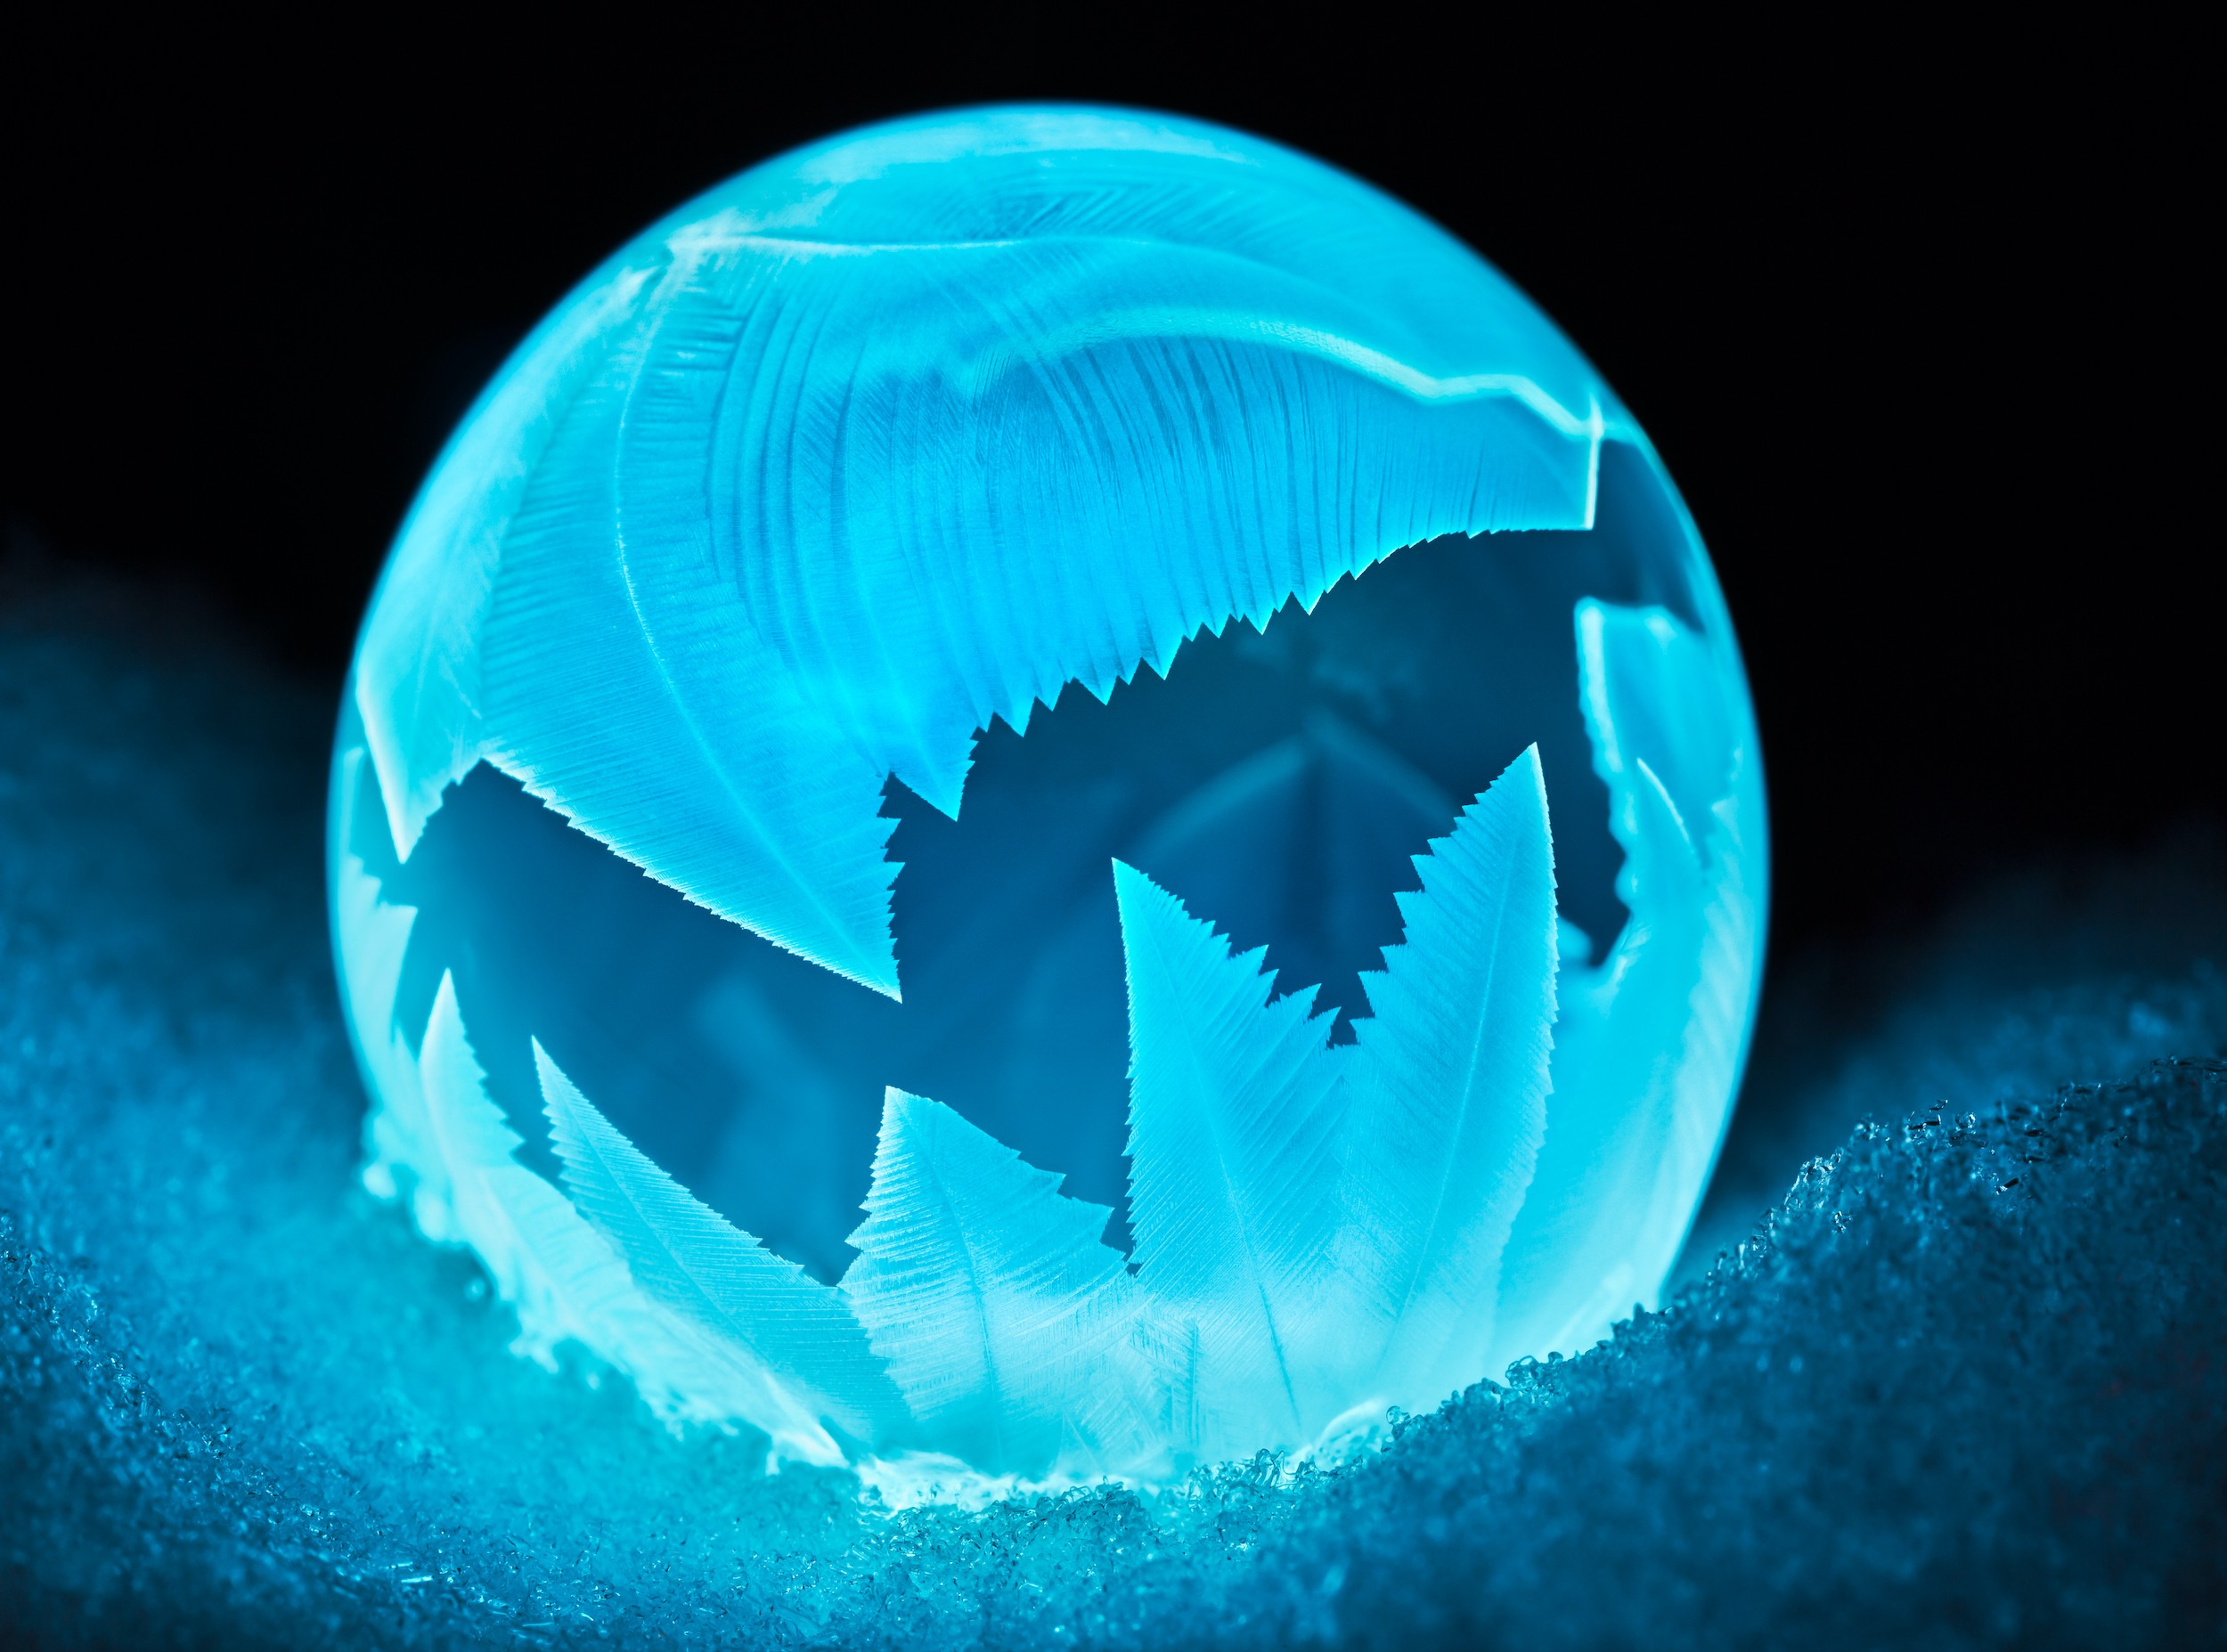 A photo resulting from a scientific experiment shows a glowing blue bubble with a jagged color pattern